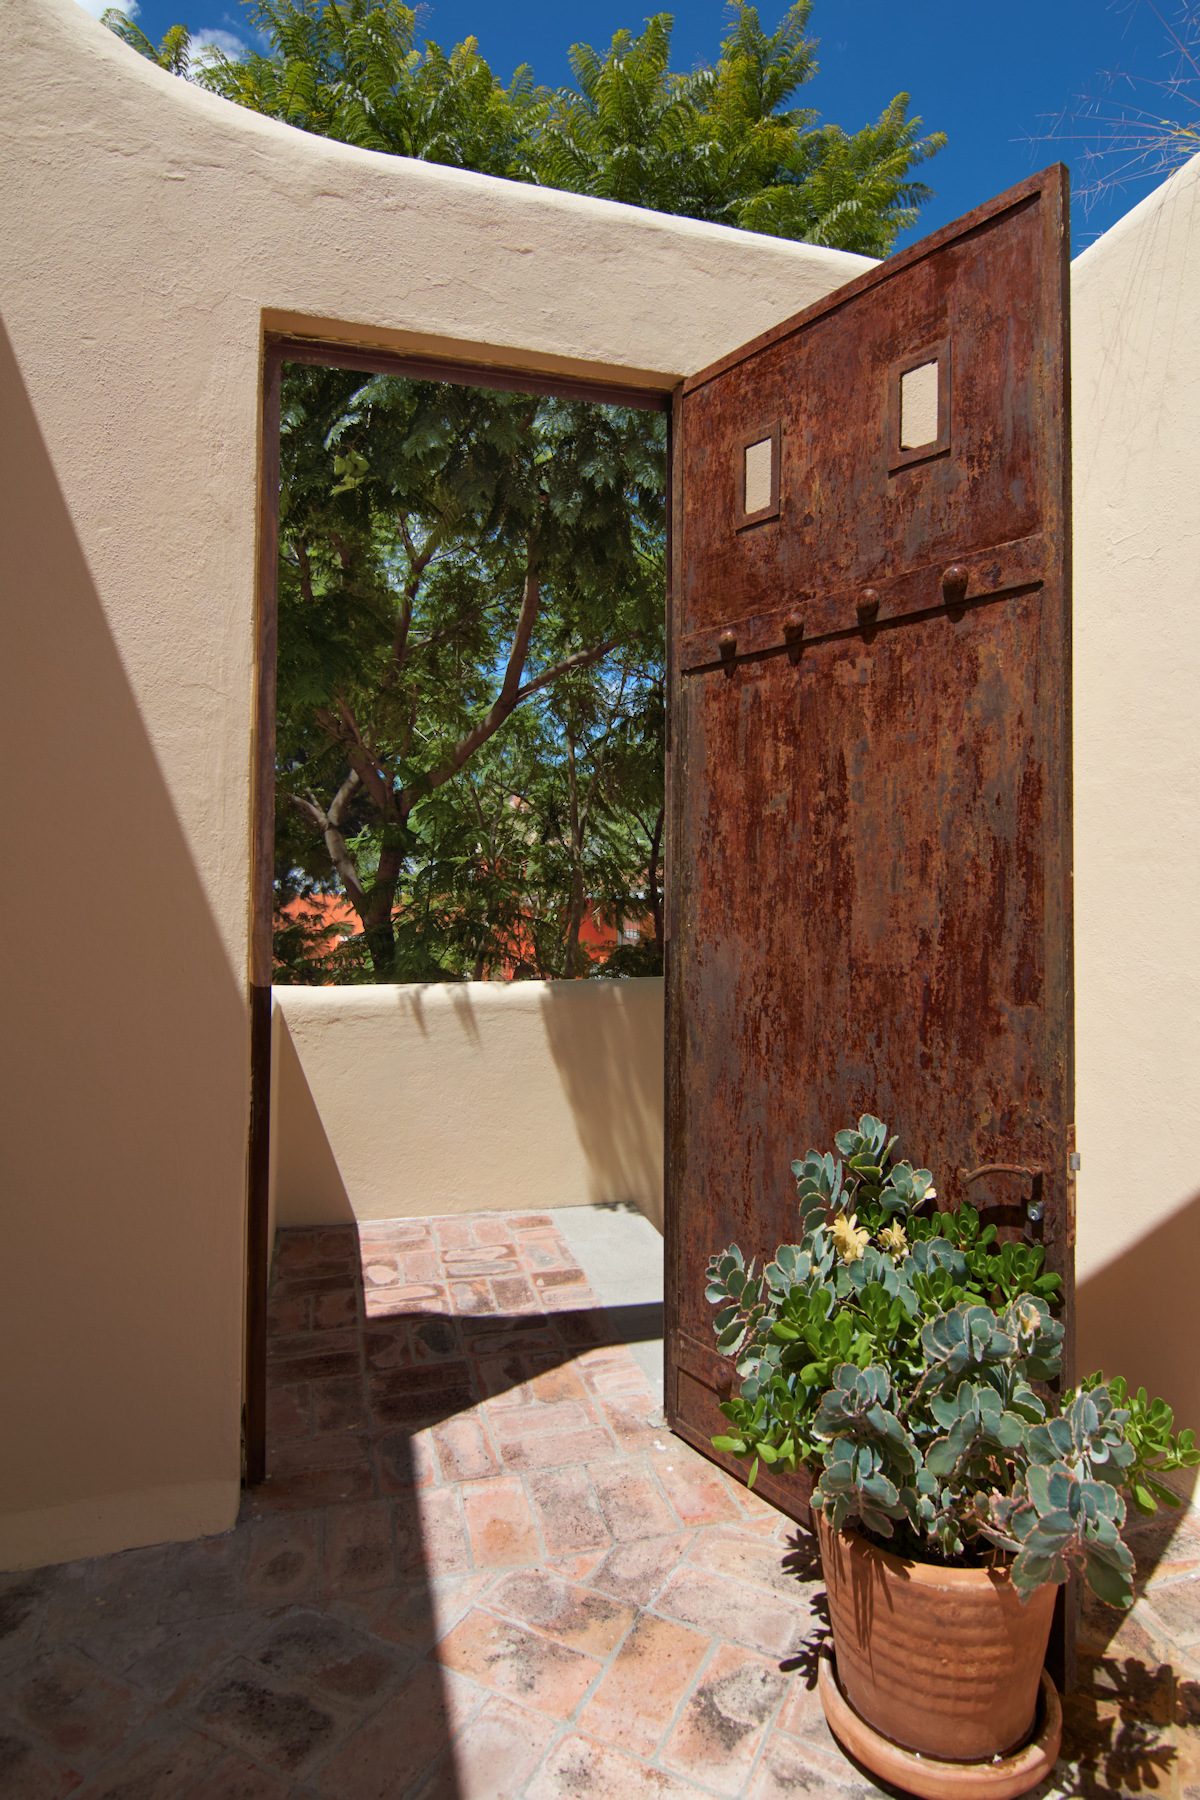 Additional photo for property listing at Casa Candelaria Los Frailes, San Miguel De Allende, Guanajuato México